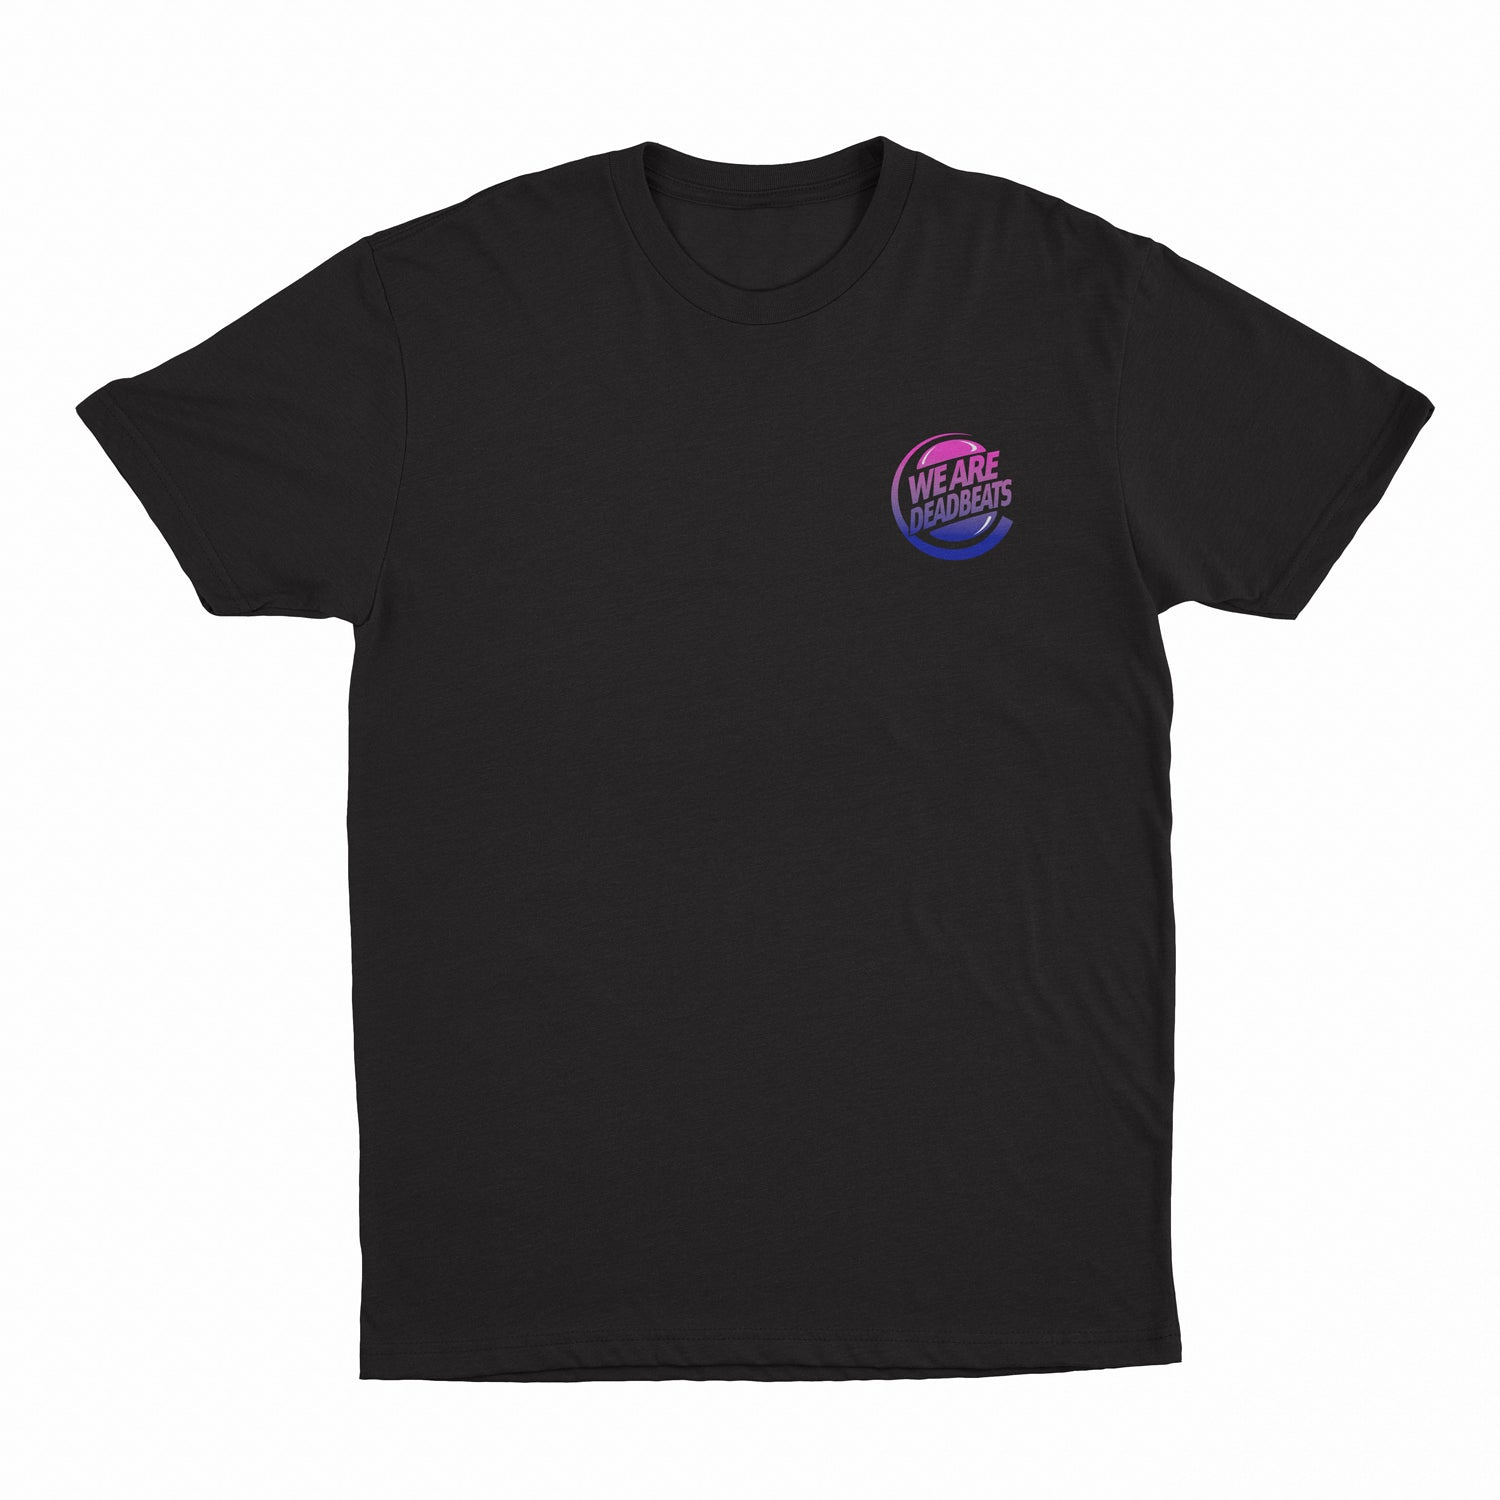 Zeds Dead - Deadbeats - Beyond Beats - Black Unisex Tee